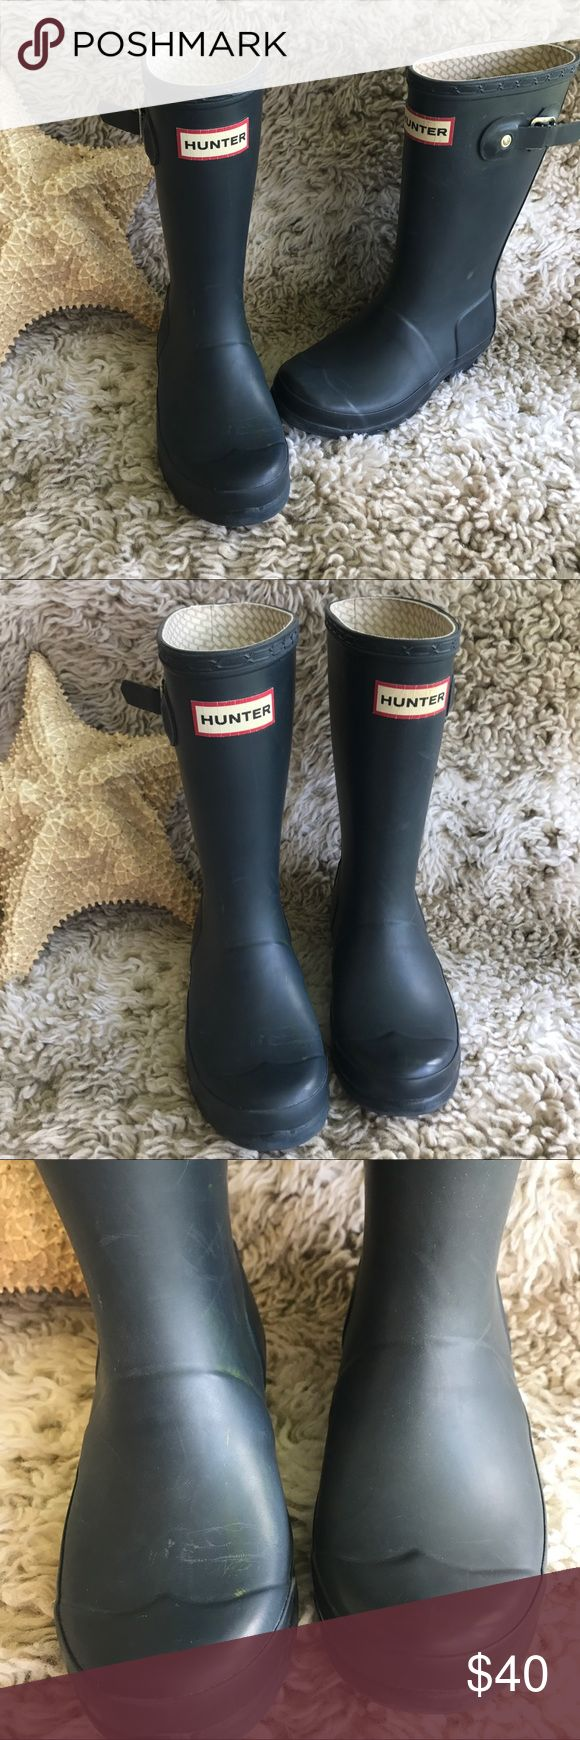 Boys hunter matte navy Wellington boots Has some light discoloration, Size US 12/1 K. Smoke free home. Hunter Boots Shoes Rain & Snow Boots